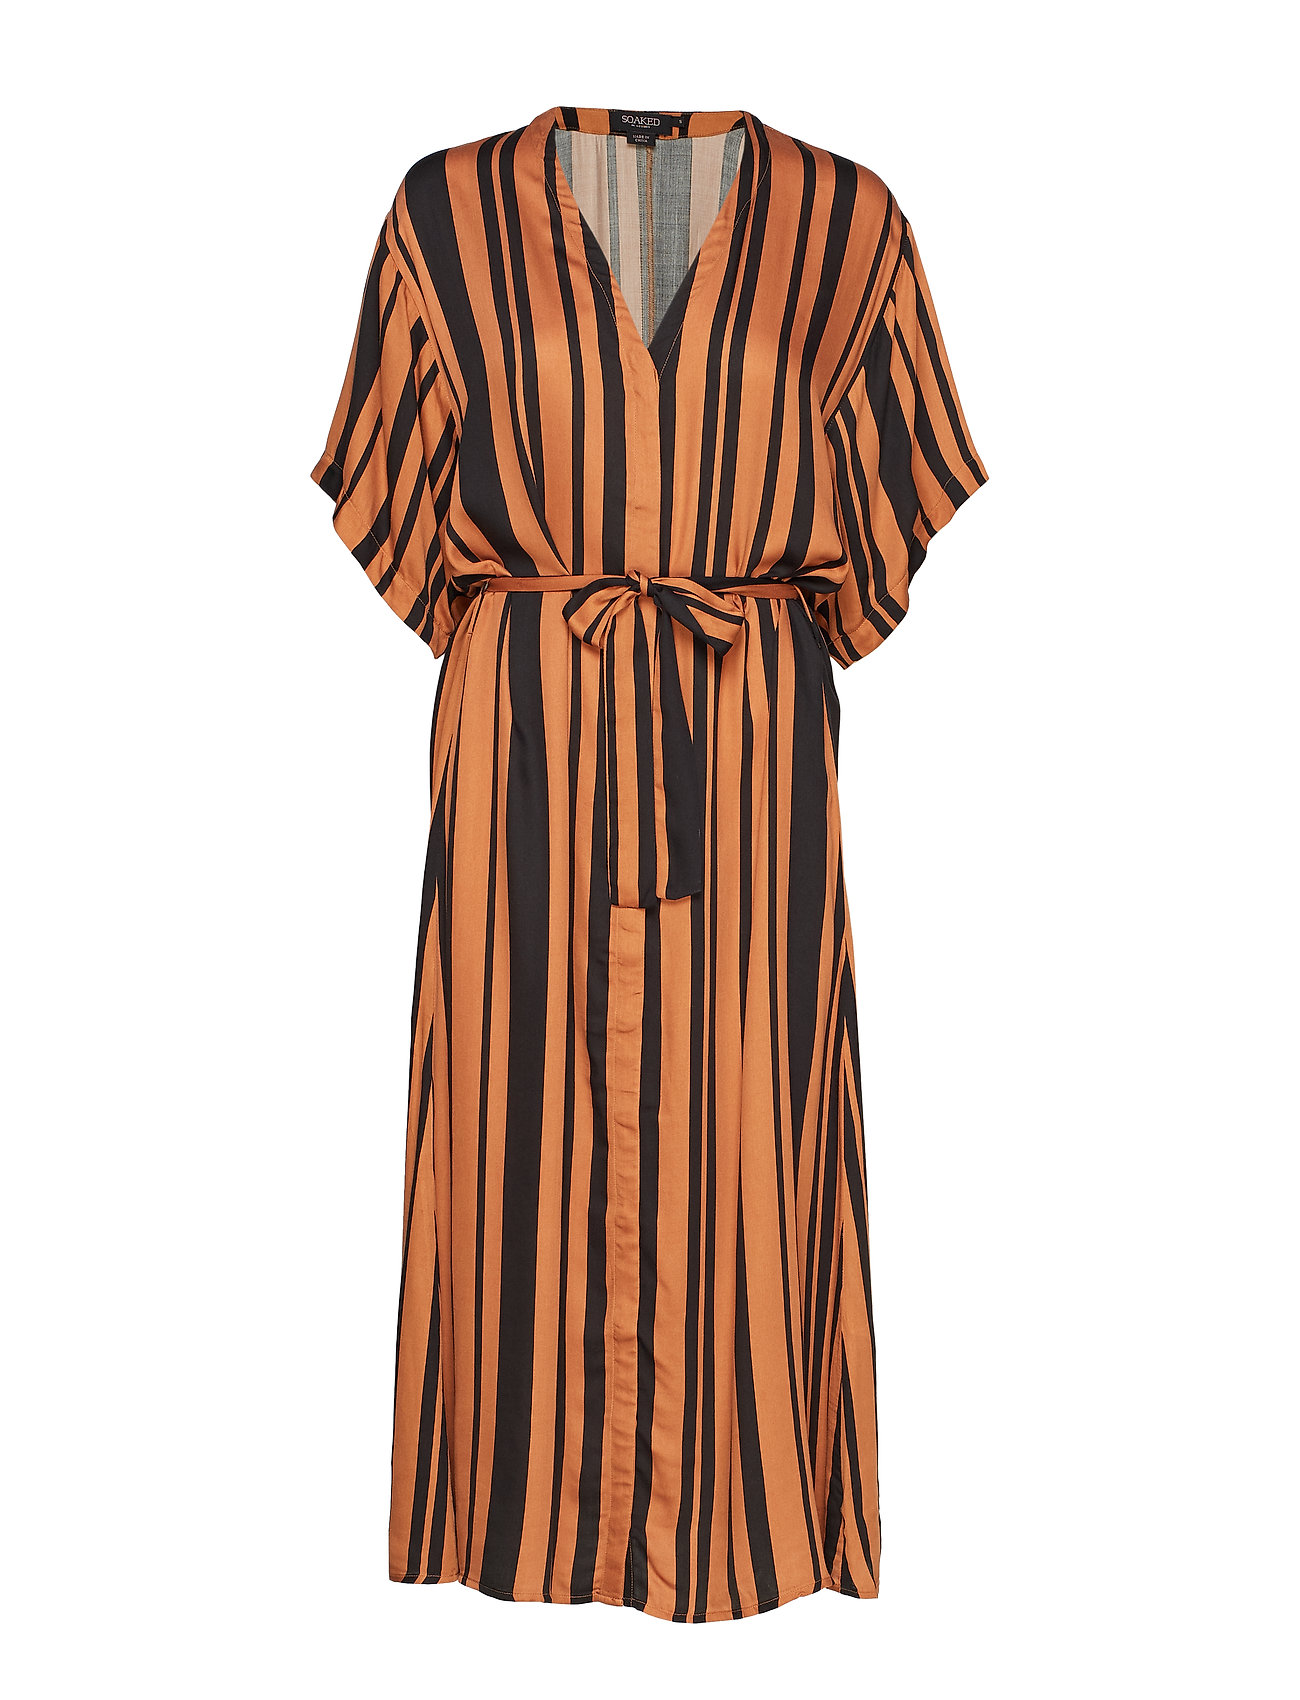 Soaked in Luxury SL Rochella Dress - PECAN BROWN AND BLACK STRIPES